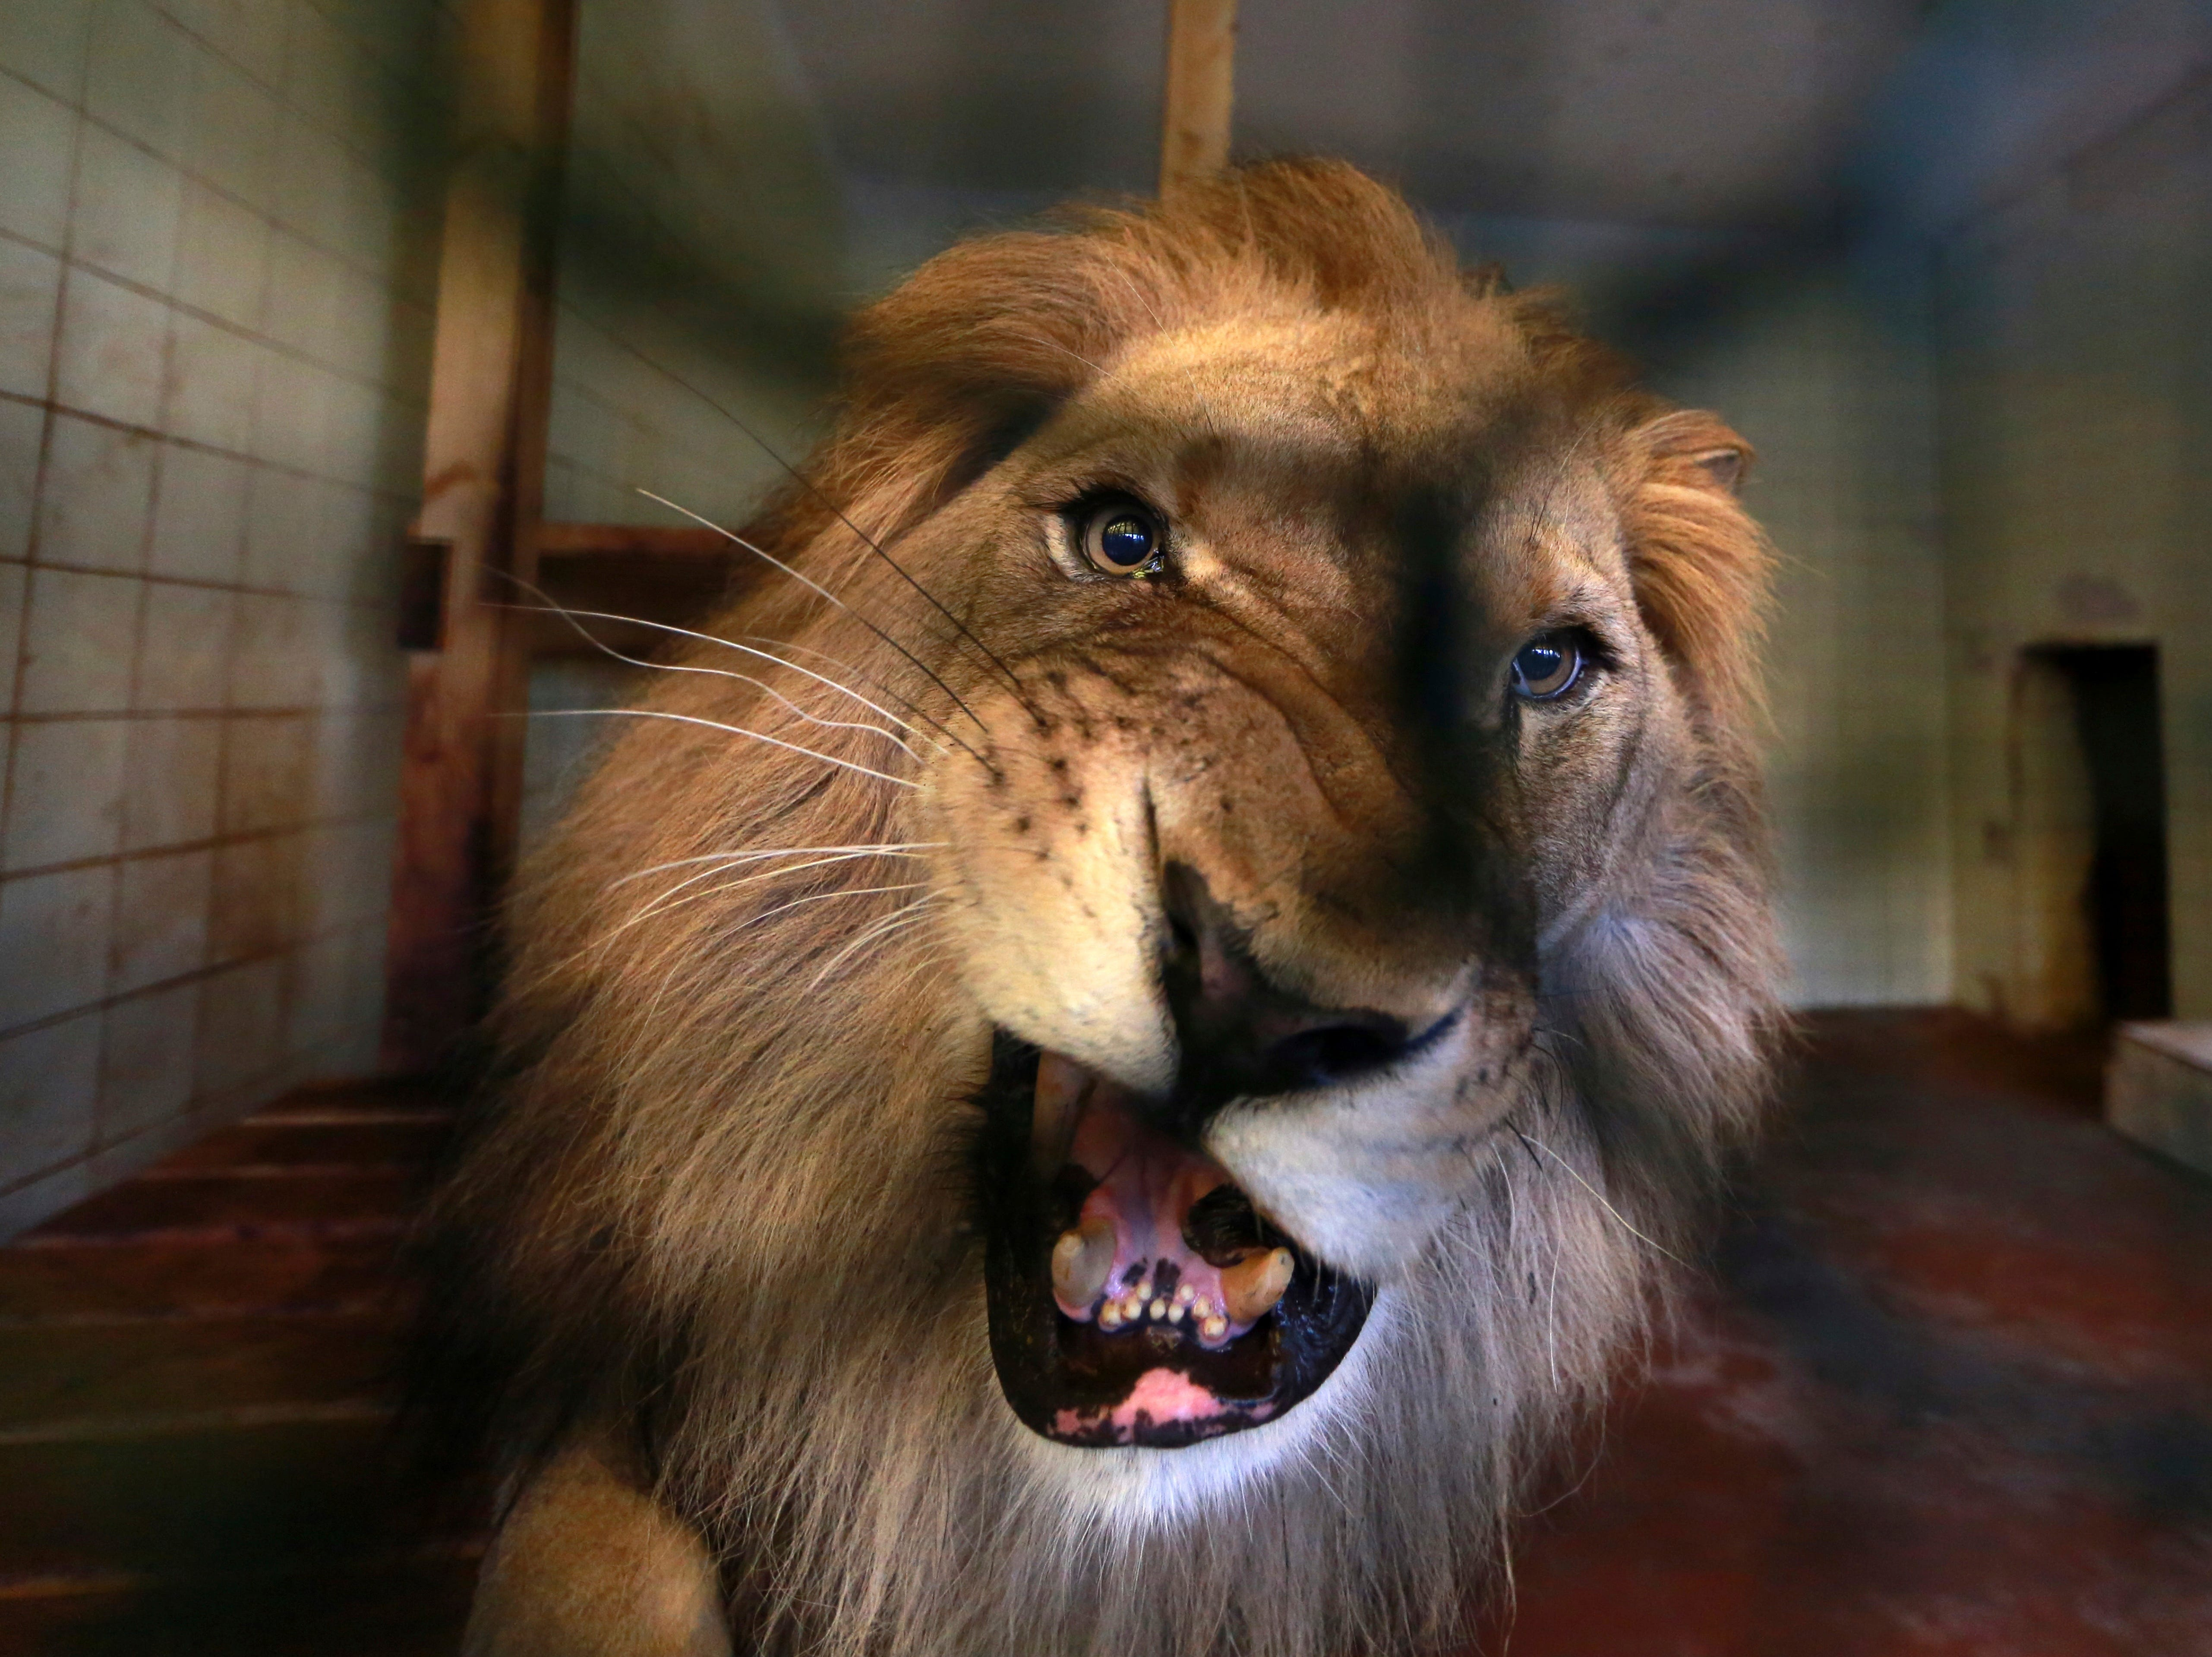 A lion is seen in its cage at a zoo in Tirana, Thursday, April 18, 2019. An international animal welfare charity was locked in a spat Thursday with the Albanian government over three lions destined for a sanctuary in the Netherlands.